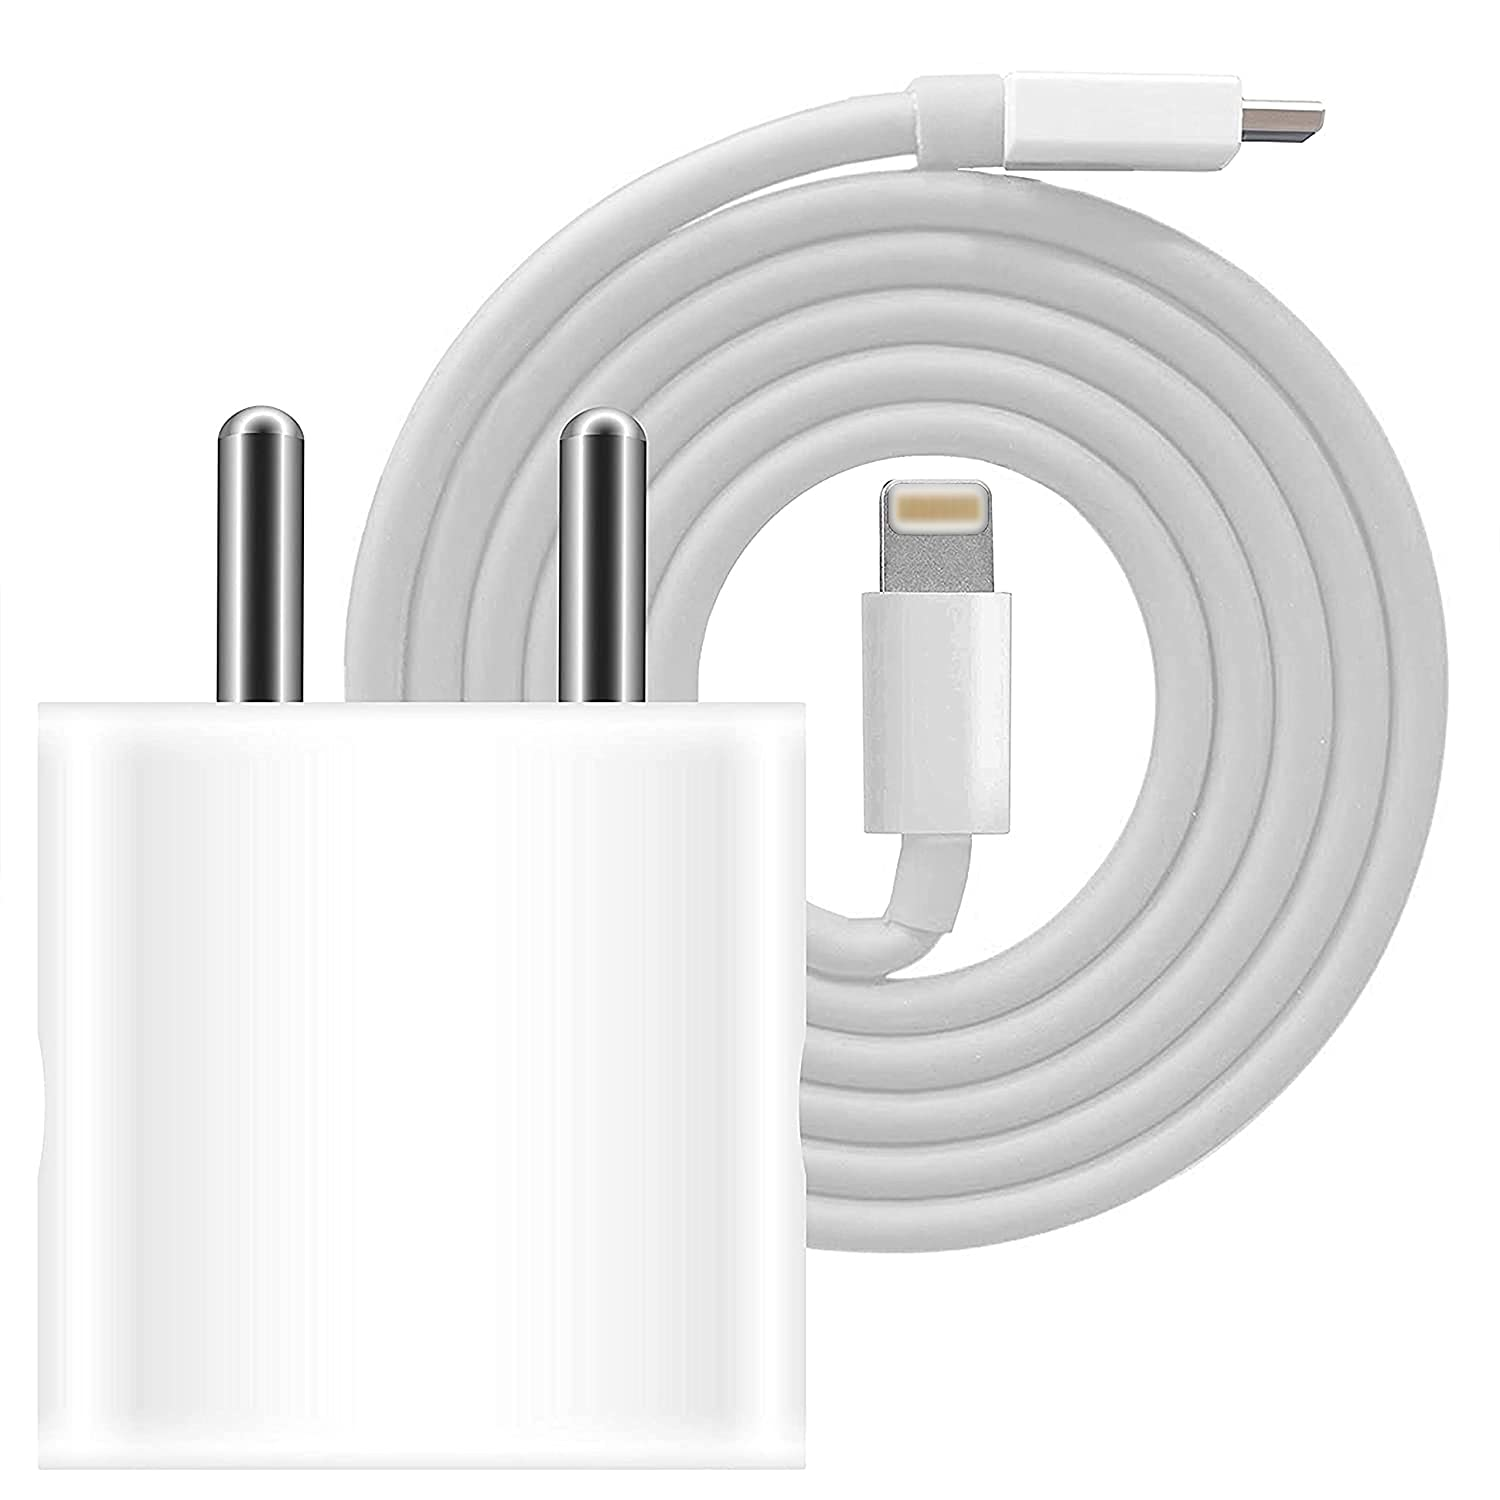 iphone 12 pro max charger price in india Crossvolt 1 watt Adapter and Cable - White : Amazon.in: Electronics